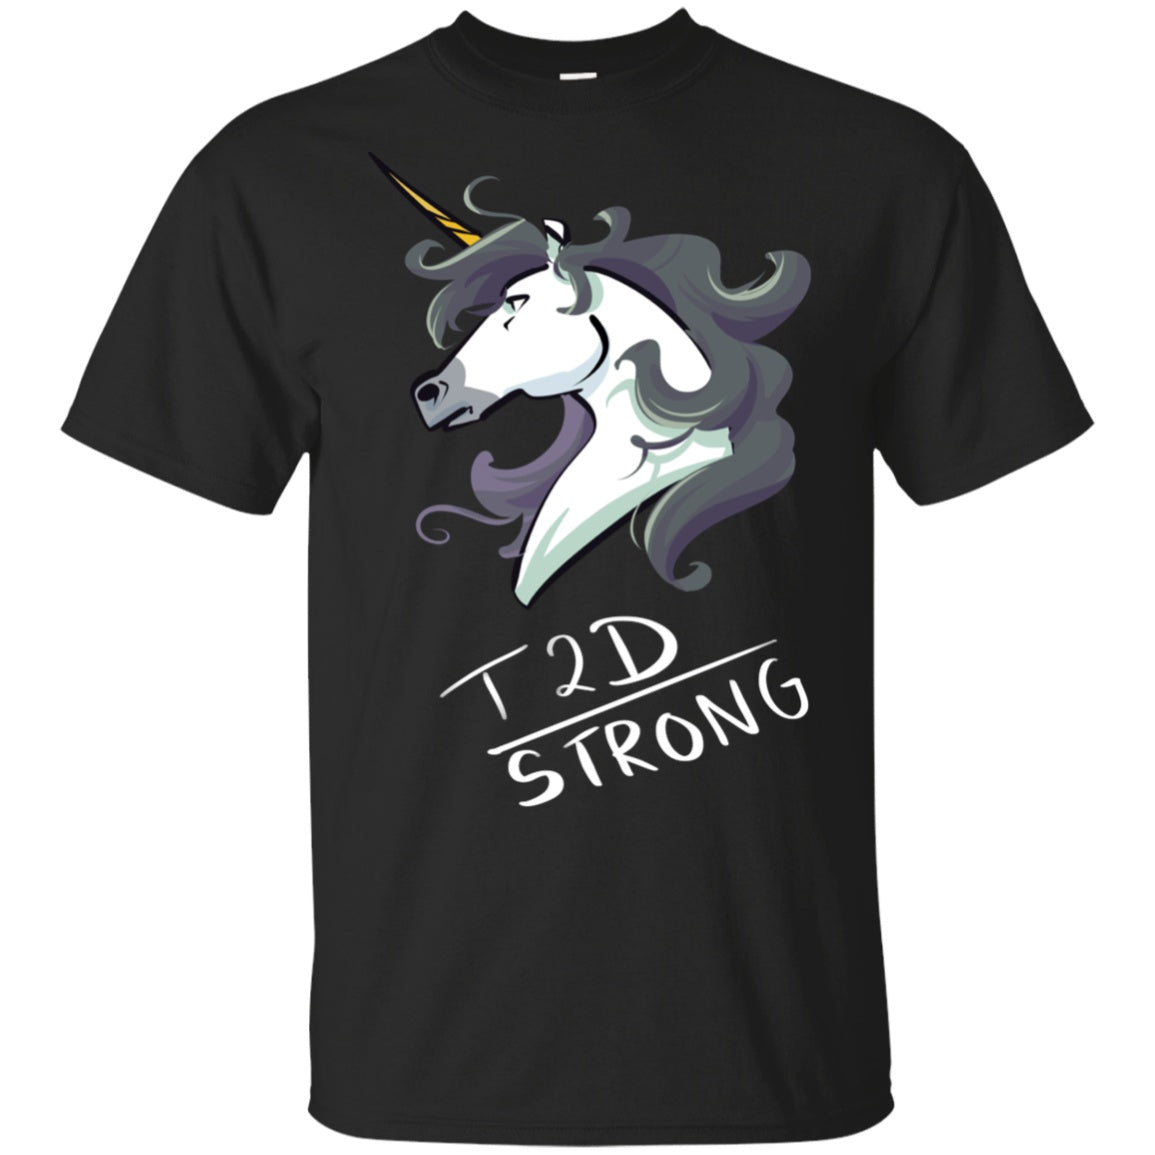 T2D Strong Unicorn Cotton Unisex T-Shirt - The Unchargeables